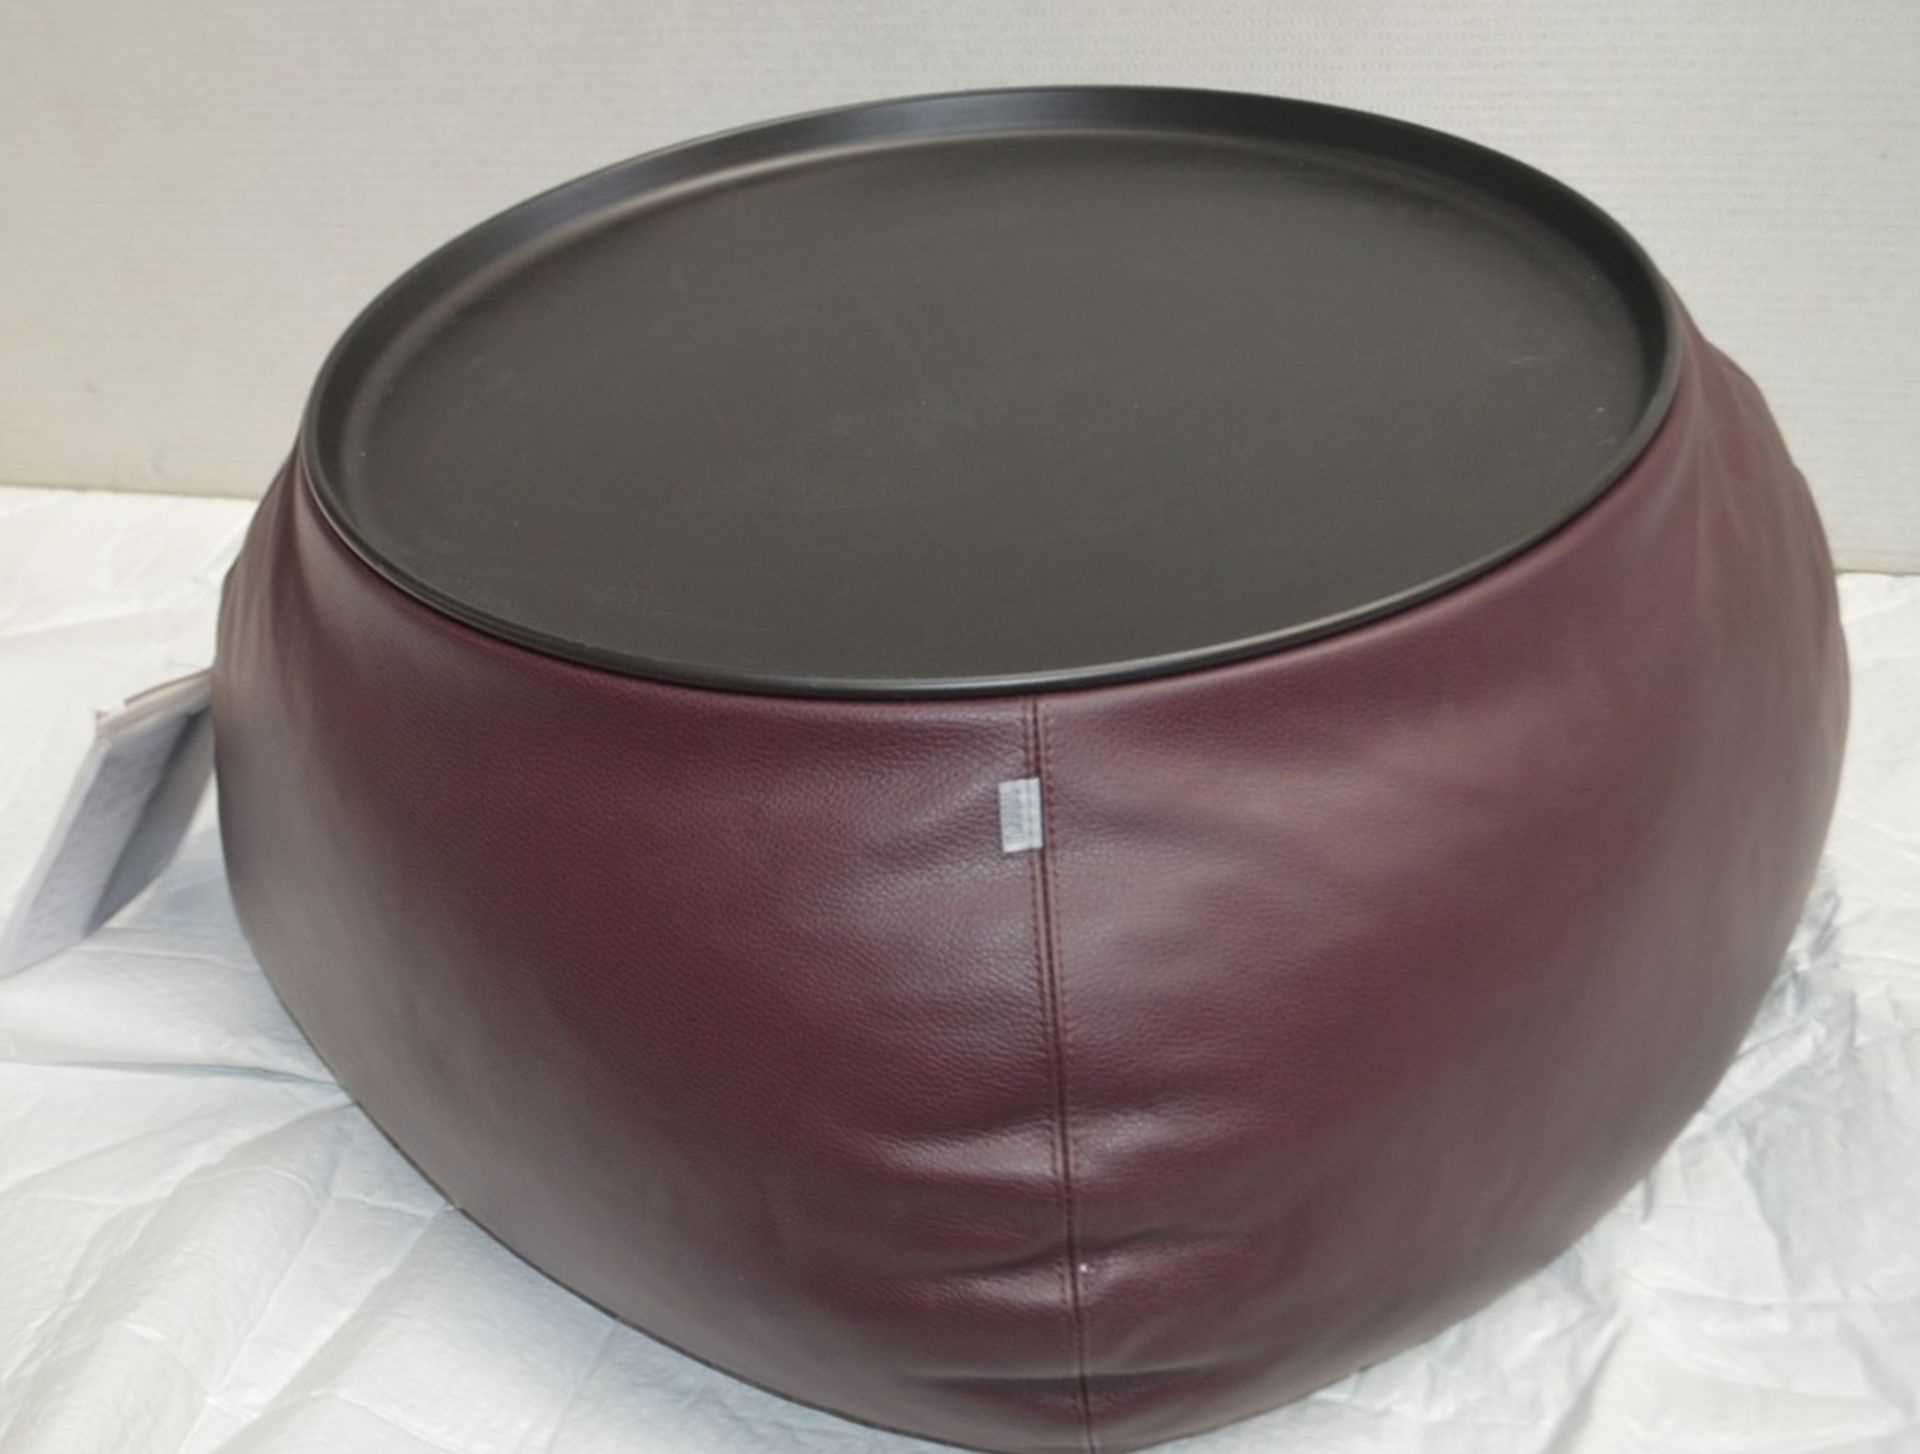 1 x B&B ITALIA 'Fat Fat' Lady Fat Low Coffee Table Upholstered In Genuine Leather - RRP £1,706 - Image 5 of 5